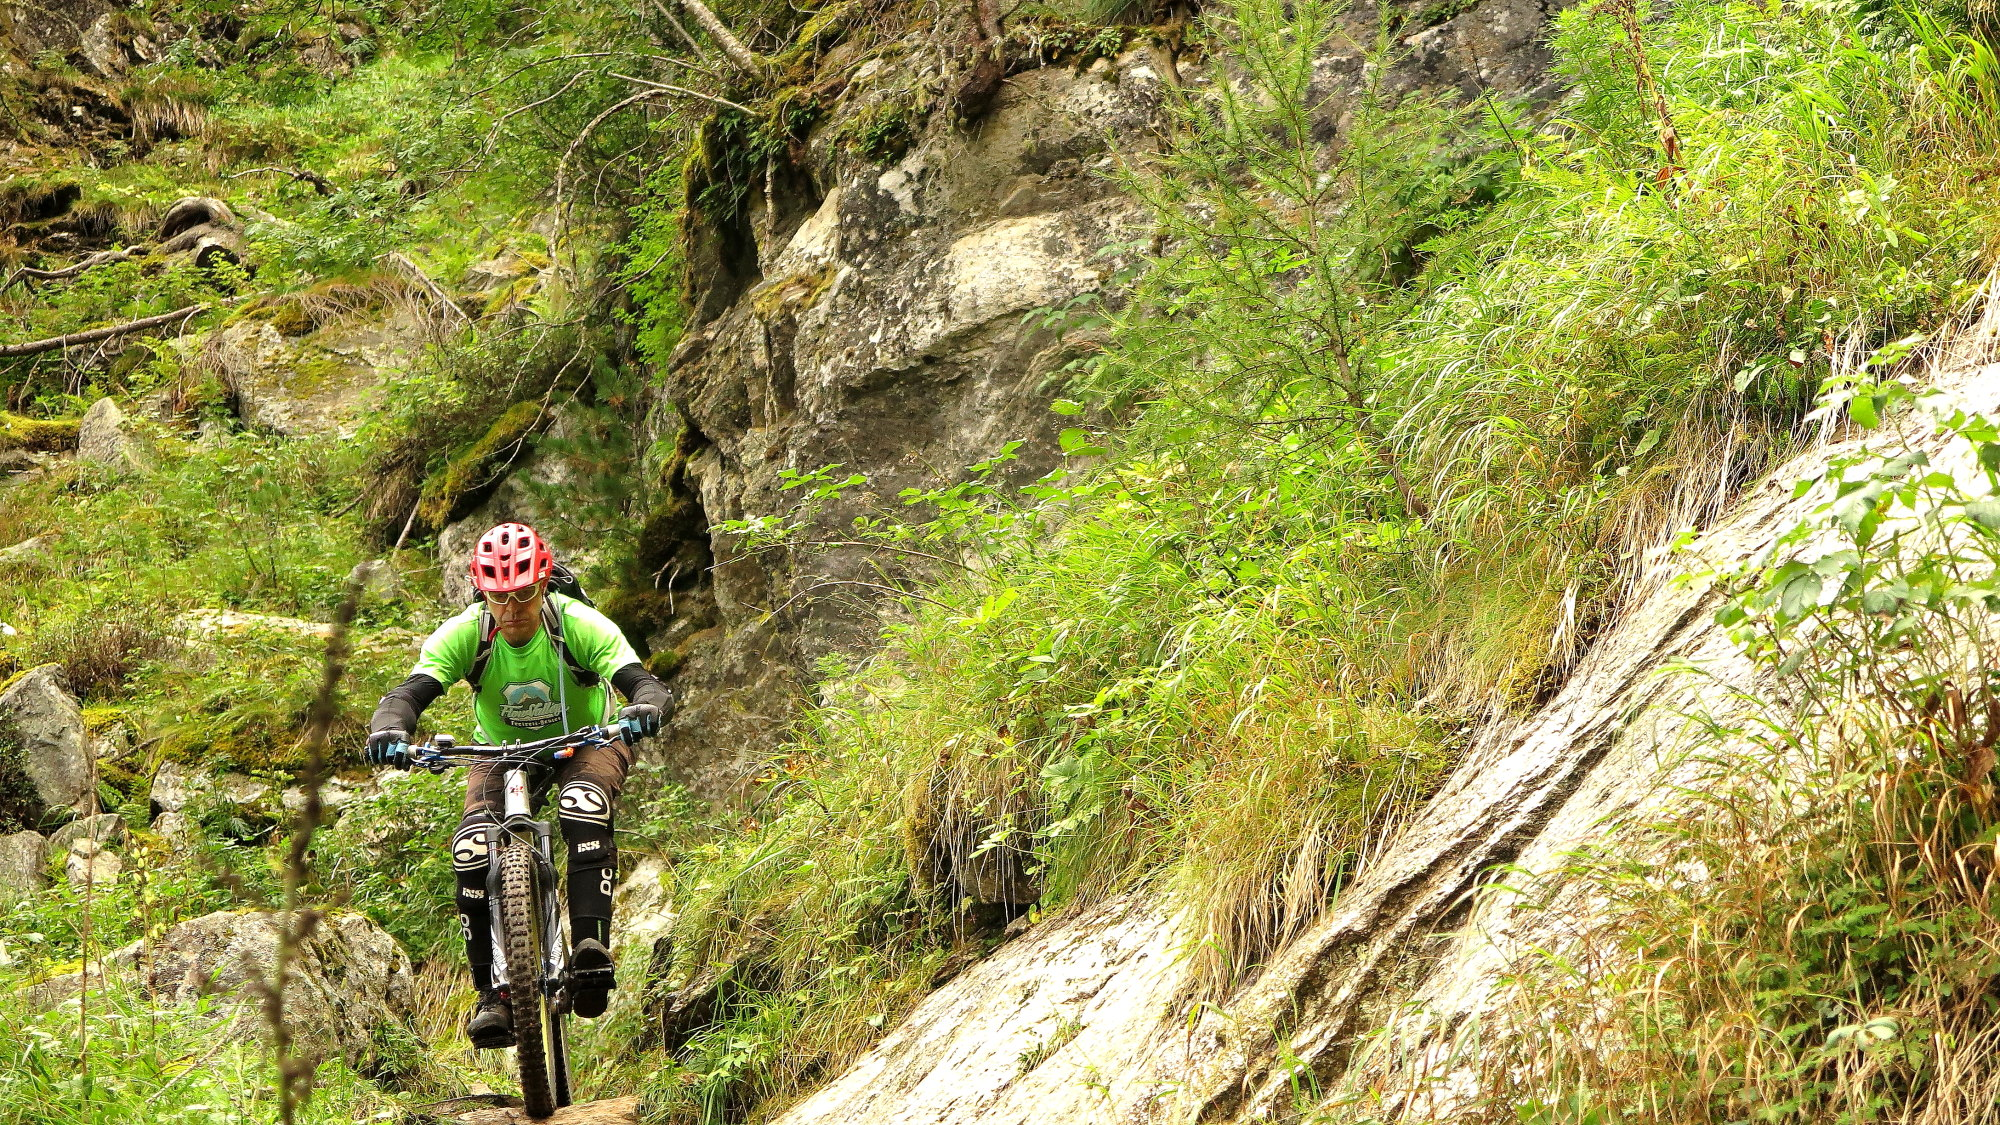 Ride Alpine Trails Mountainbike Freeride & Enduro Camp MTB Freeride Trail Attack Bikebergsteigen MTB Hochalpin Ride on